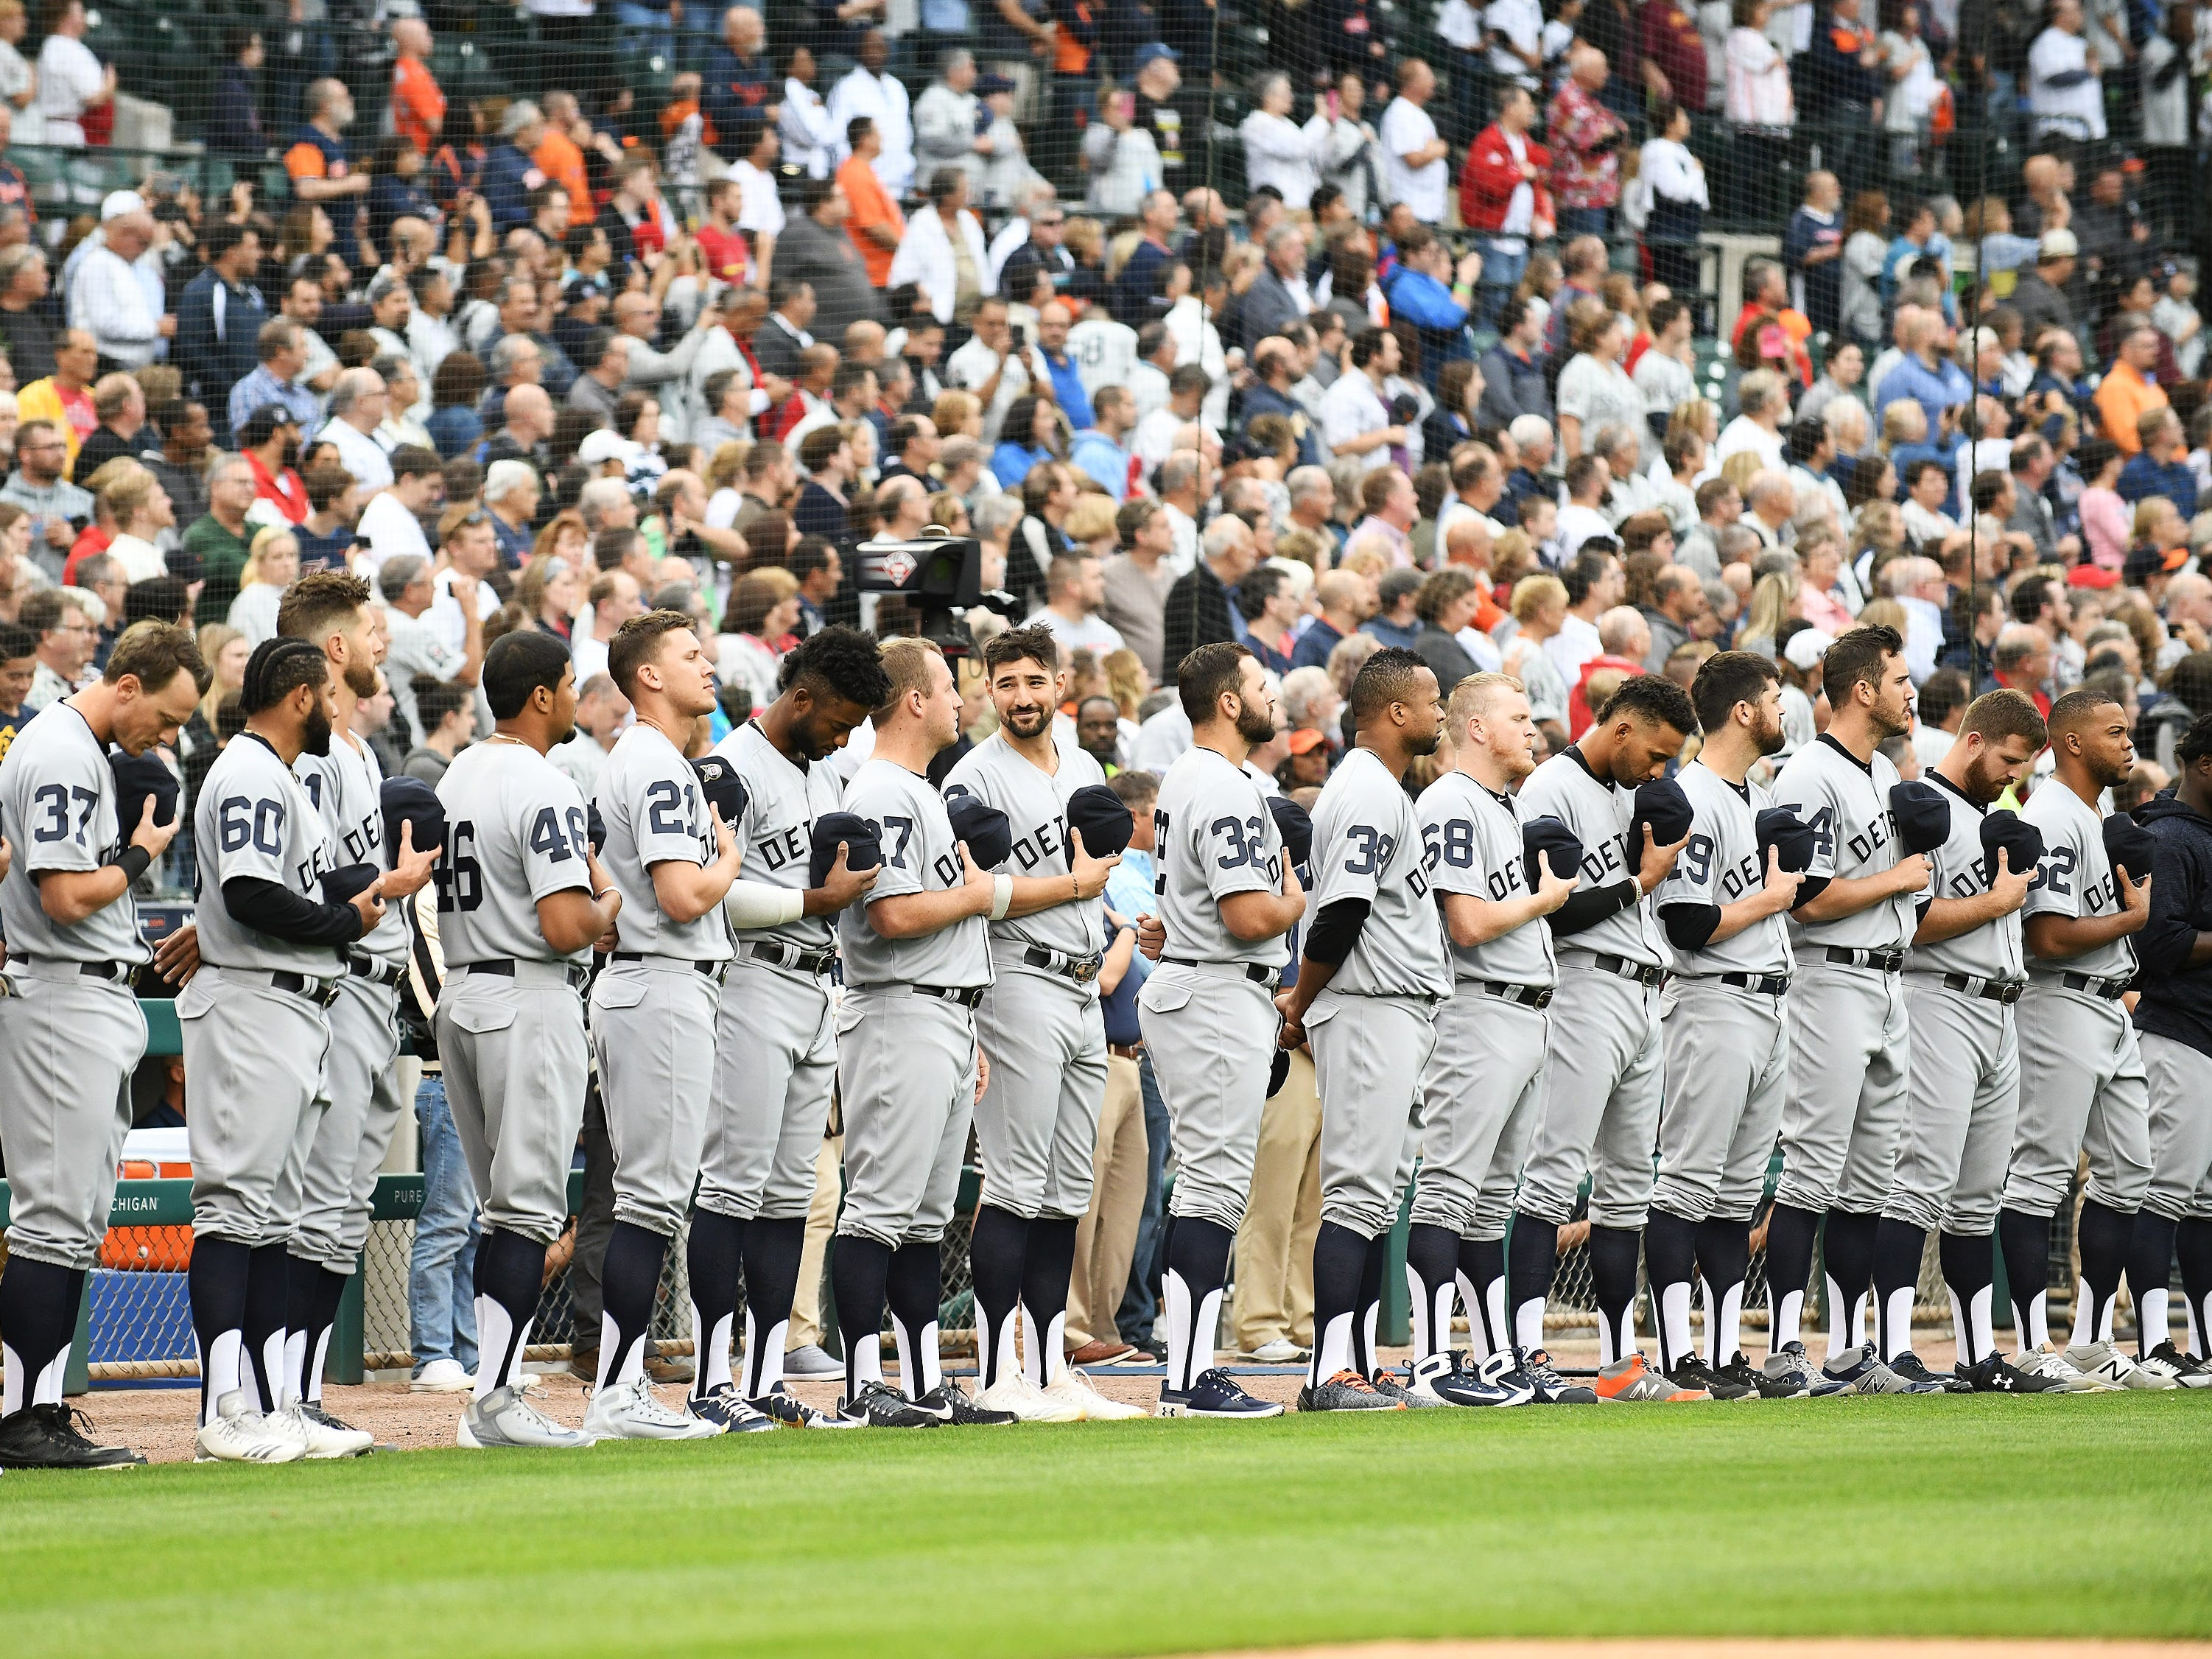 Tigers stand during the national anthem.